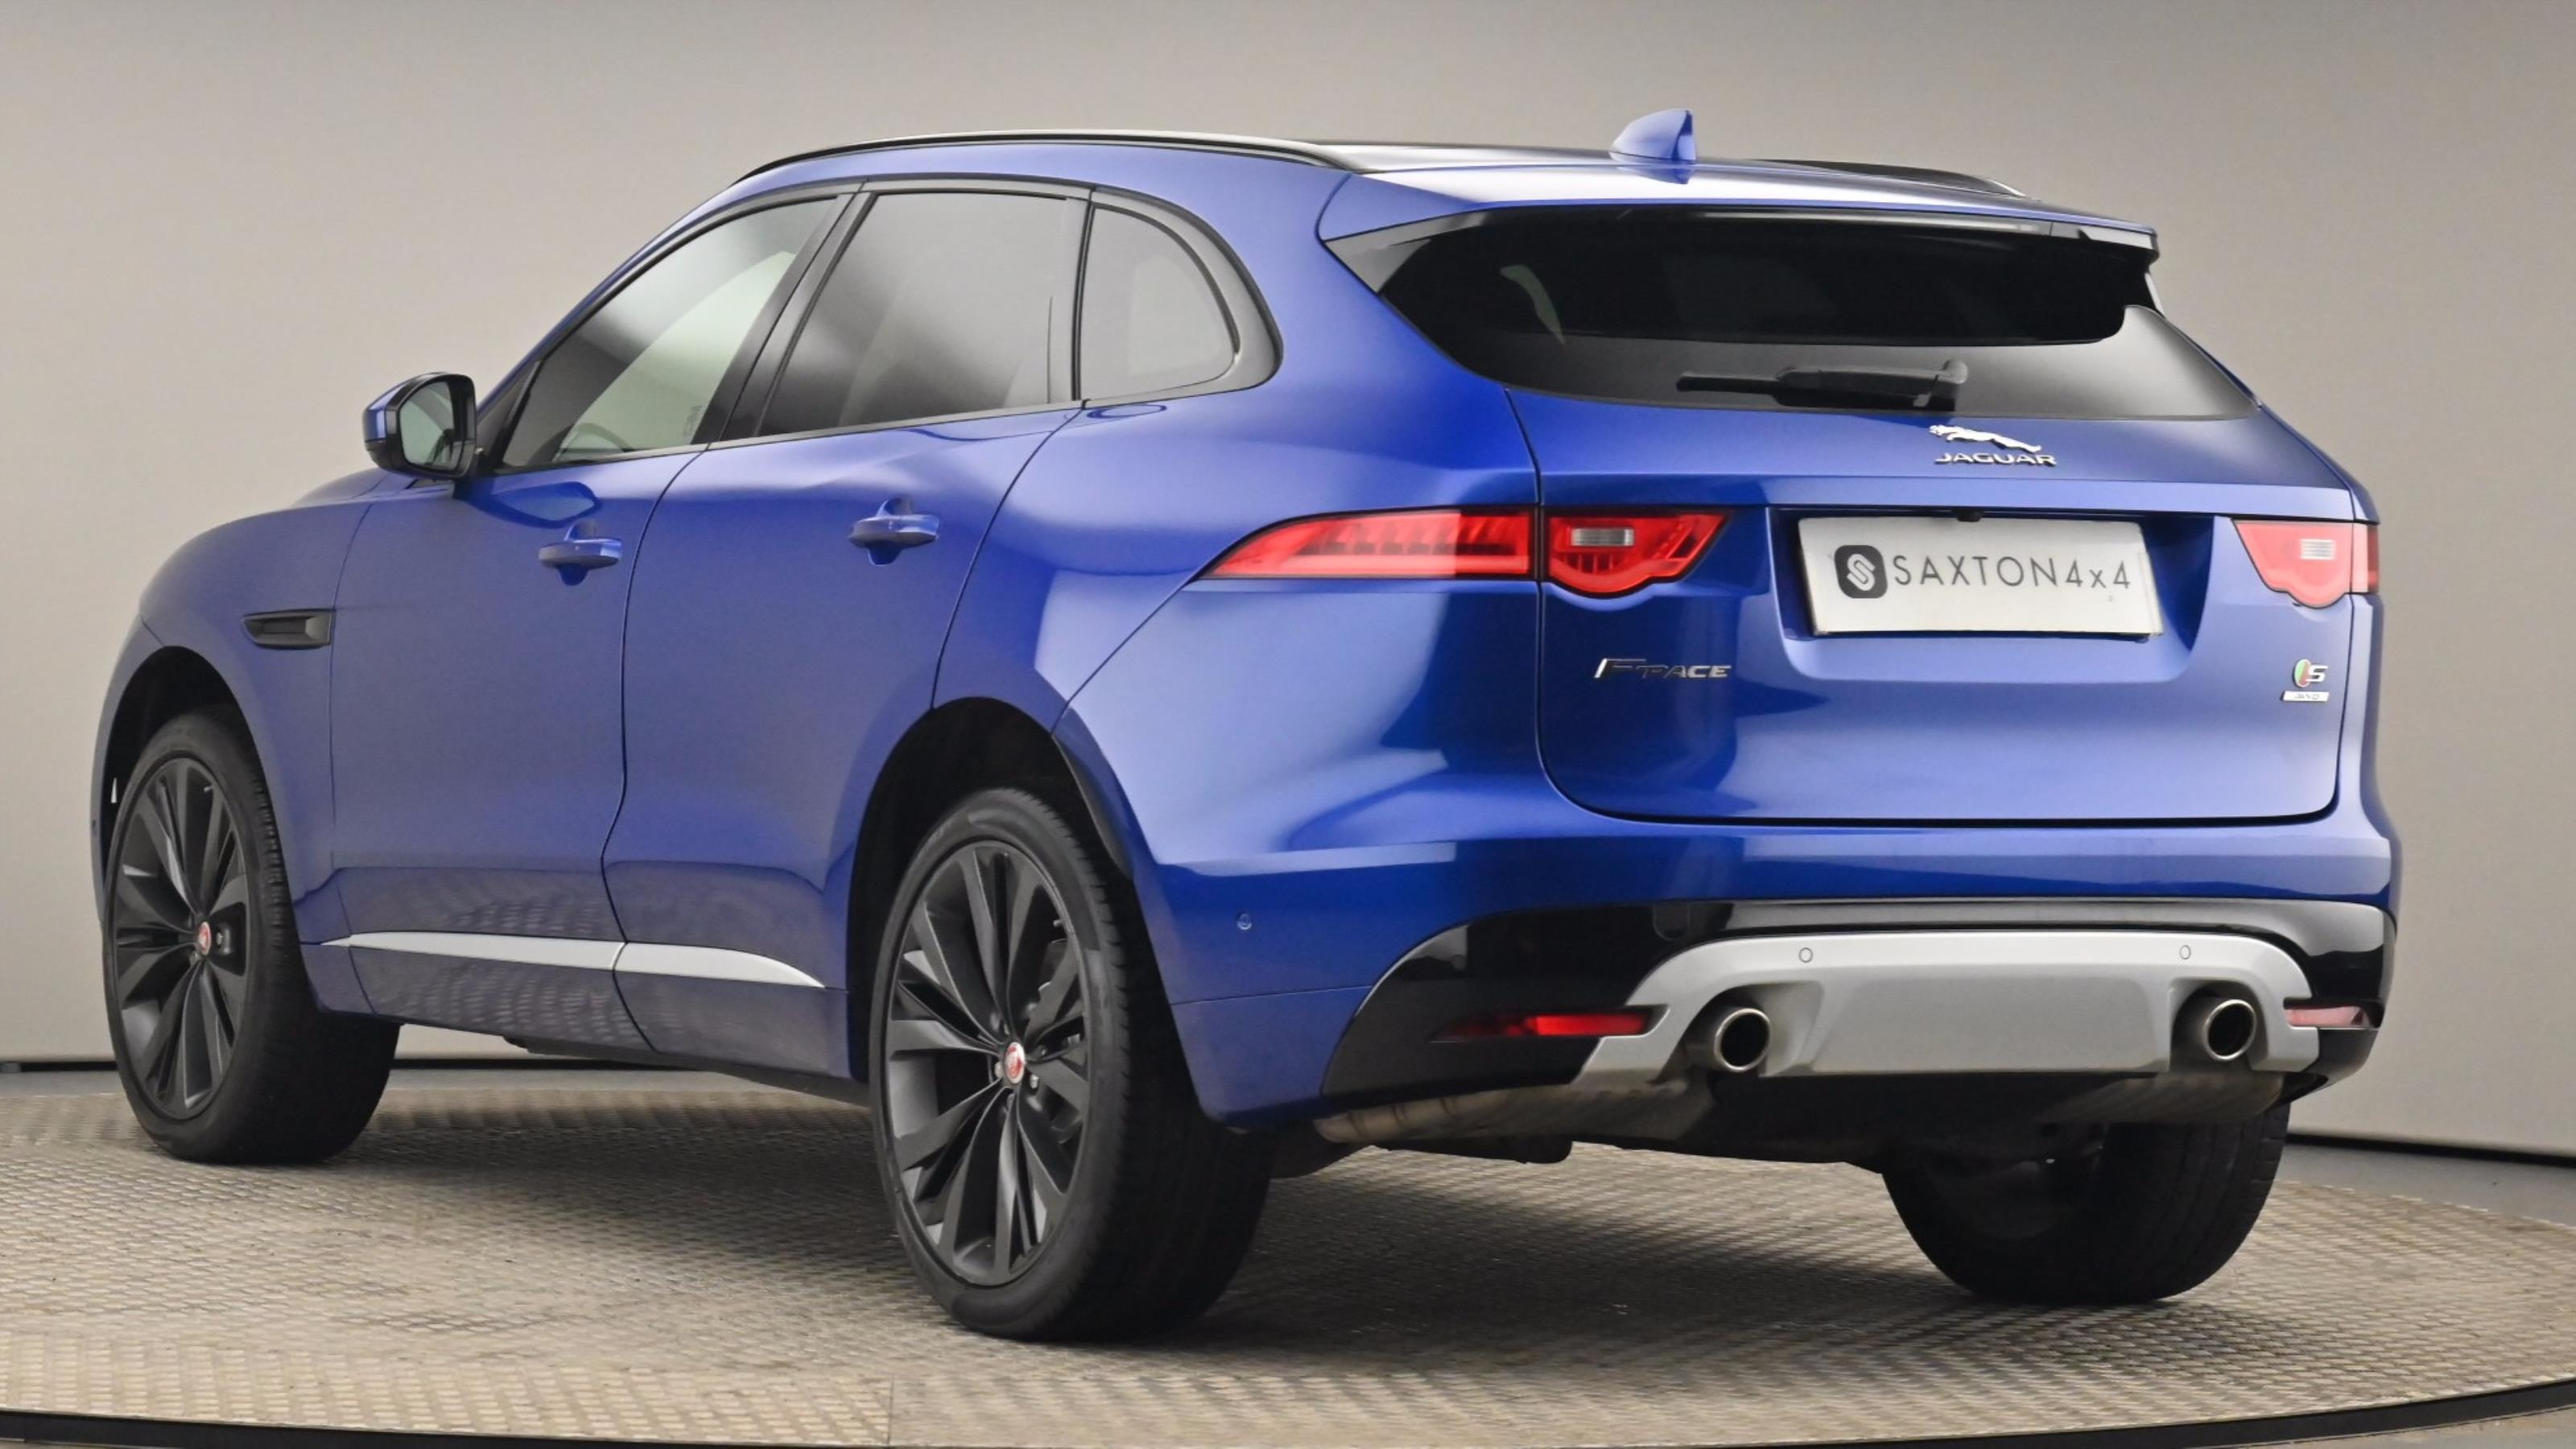 Used 2016 Jaguar F-PACE 3.0d V6 1st Edition 5dr Auto AWD BLUE at Saxton4x4